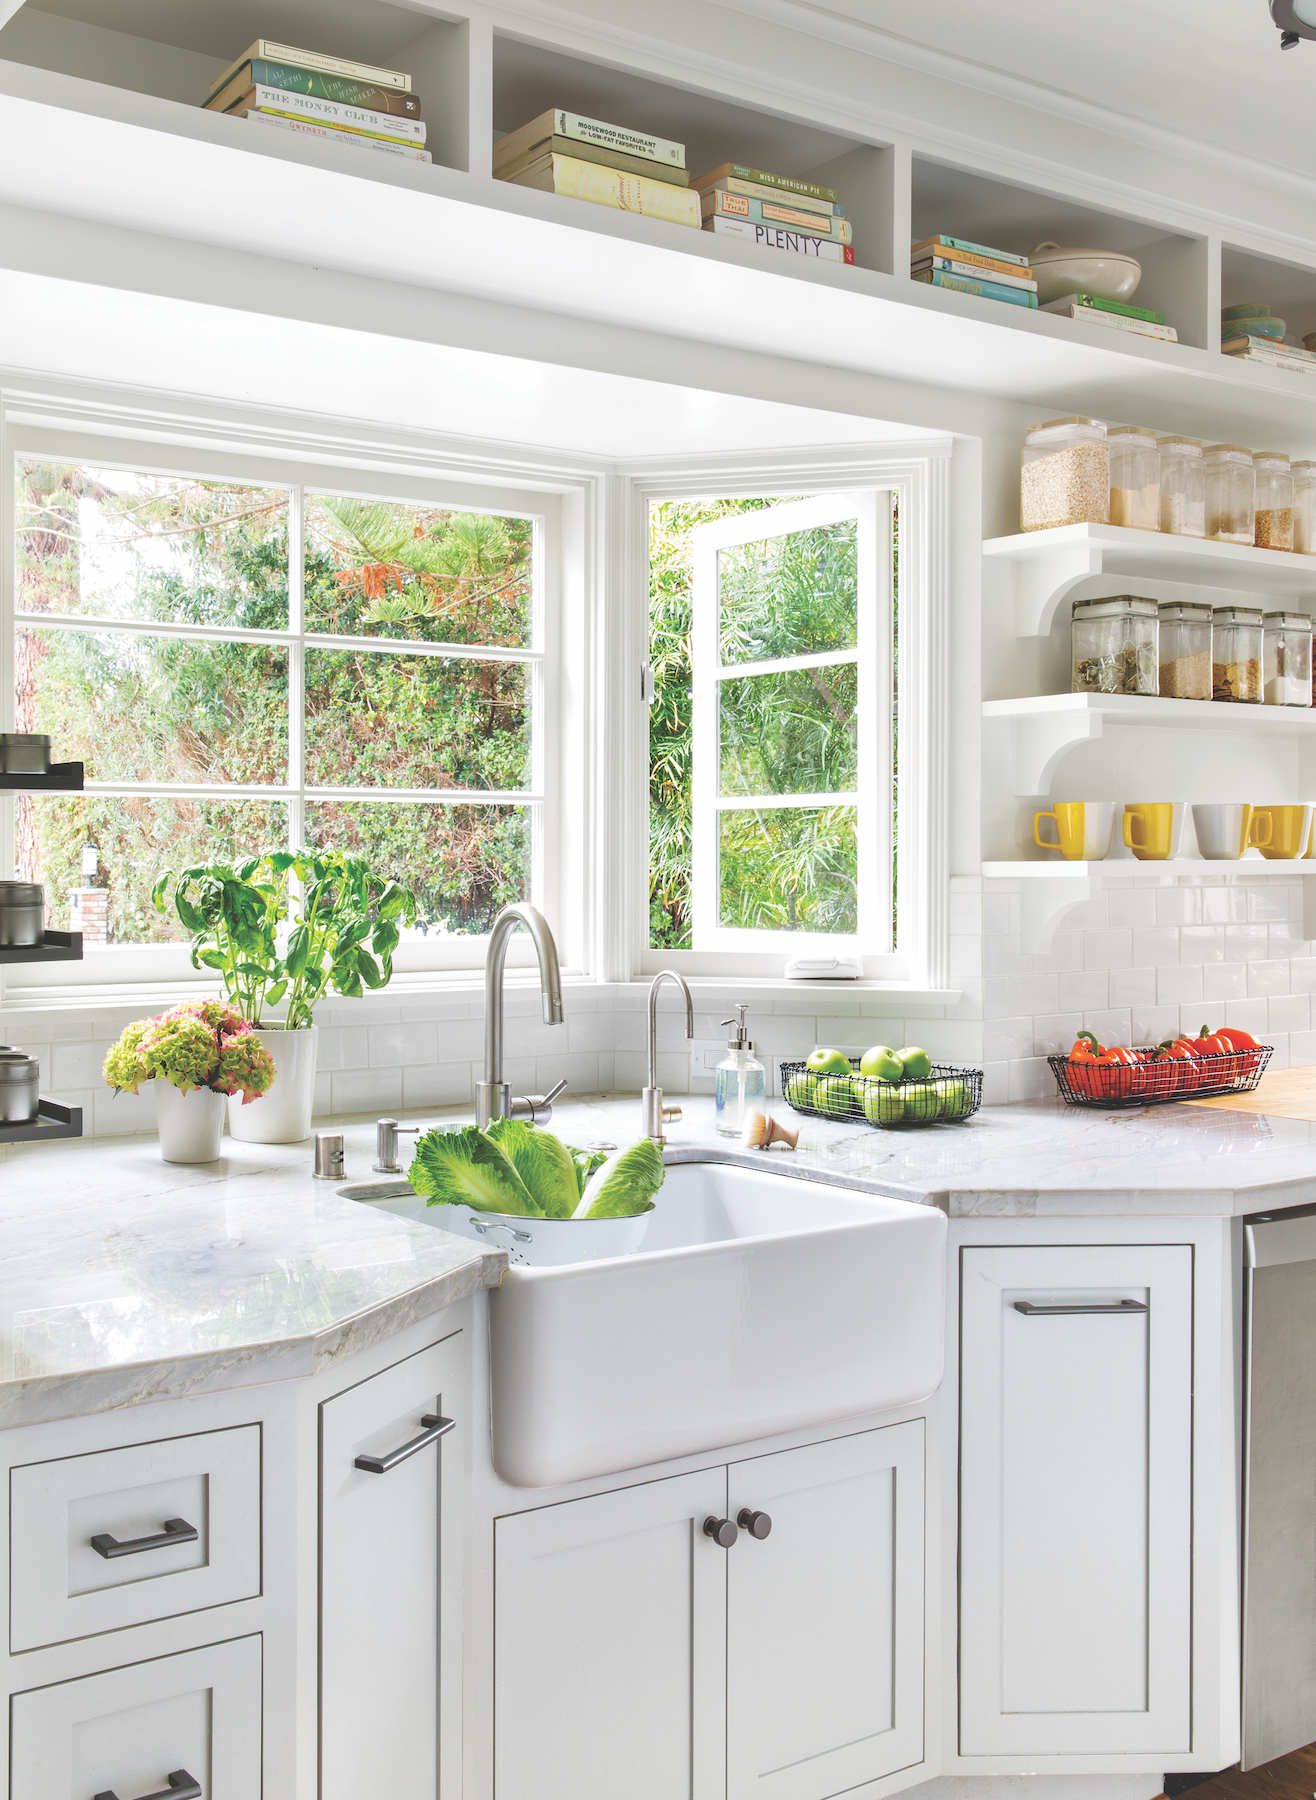 Kitchen Cleaning Plan, beautiful kitchen with vegetables in the sink and window